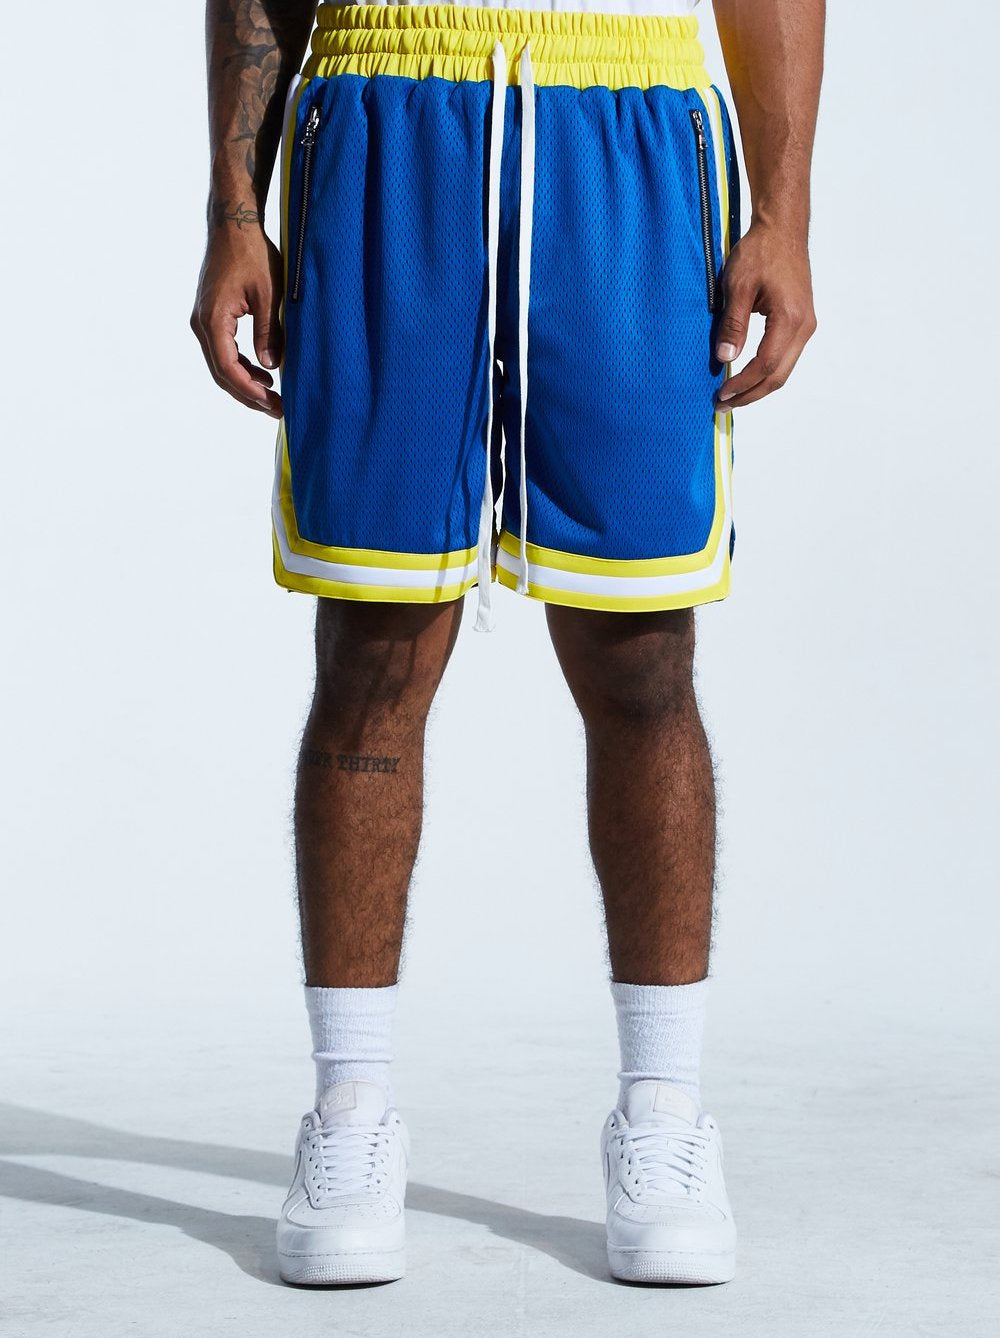 Basketball Mesh Shorts Warriors (Blue/Yellow) /C9